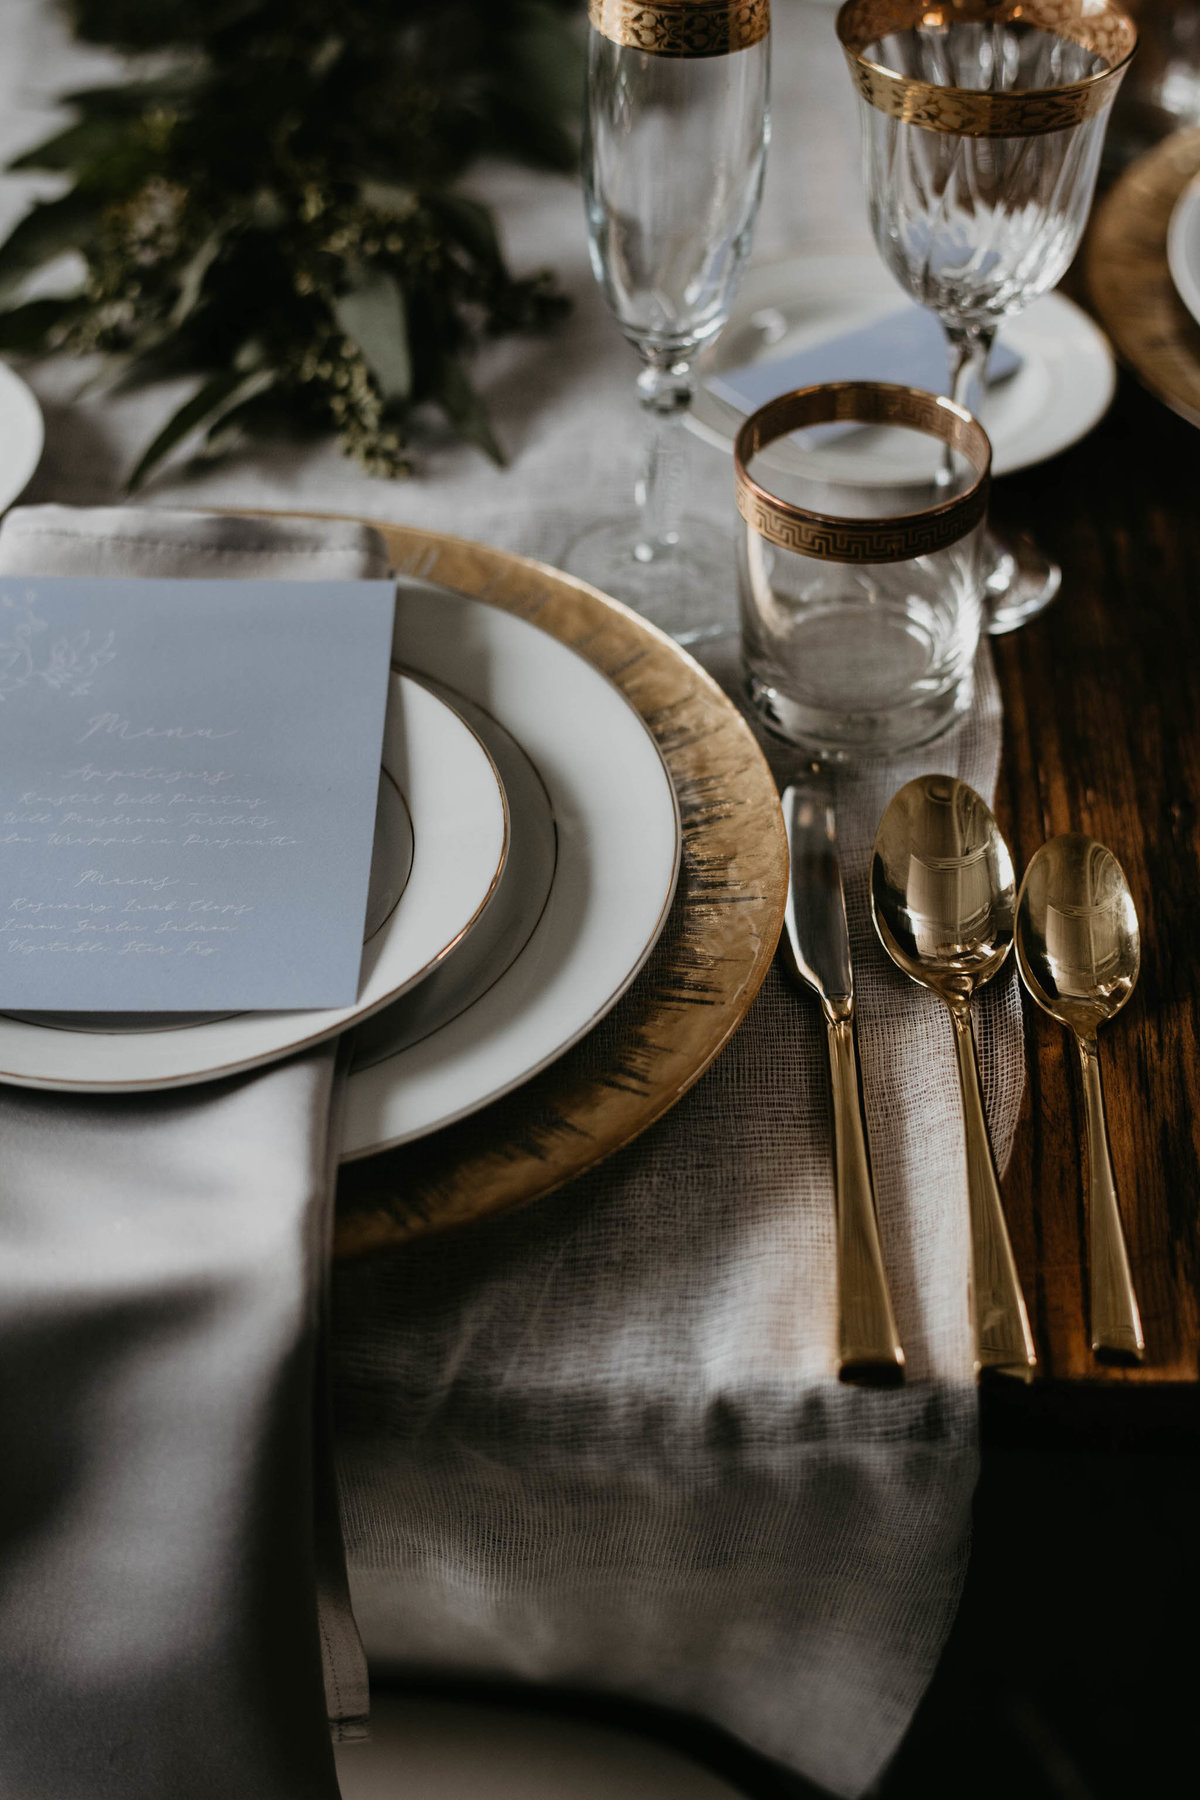 head of the table set with gold cutlery, charger plate and cheese cloth table runner